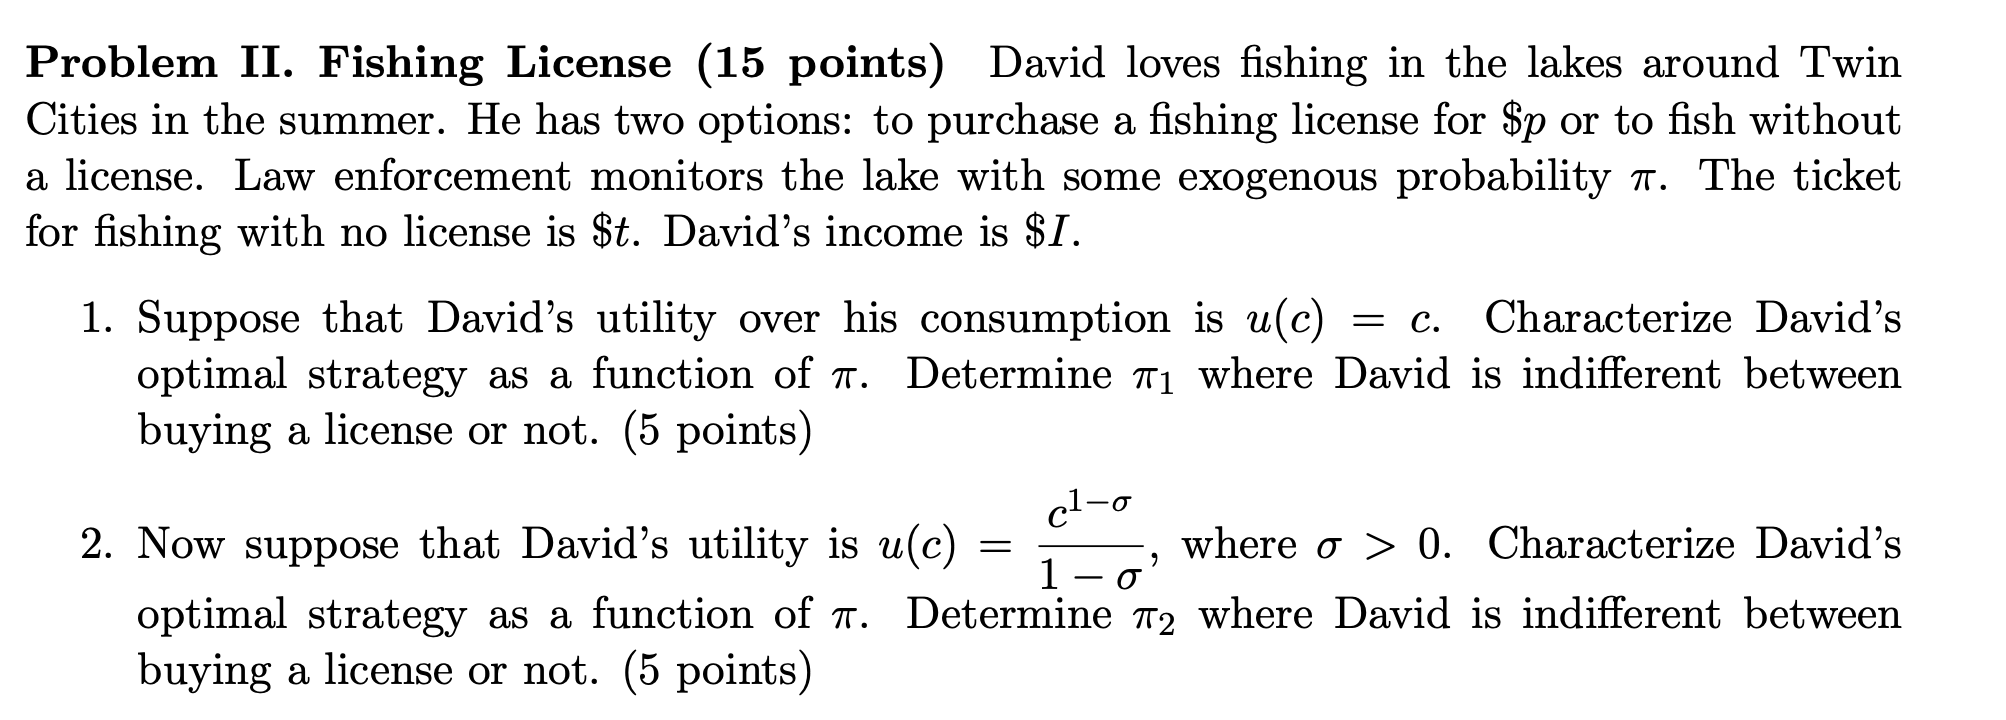 Problem II. Fishing License (15 points) David loves fishing in the lakes around Twin Cities in the summer. He has two options